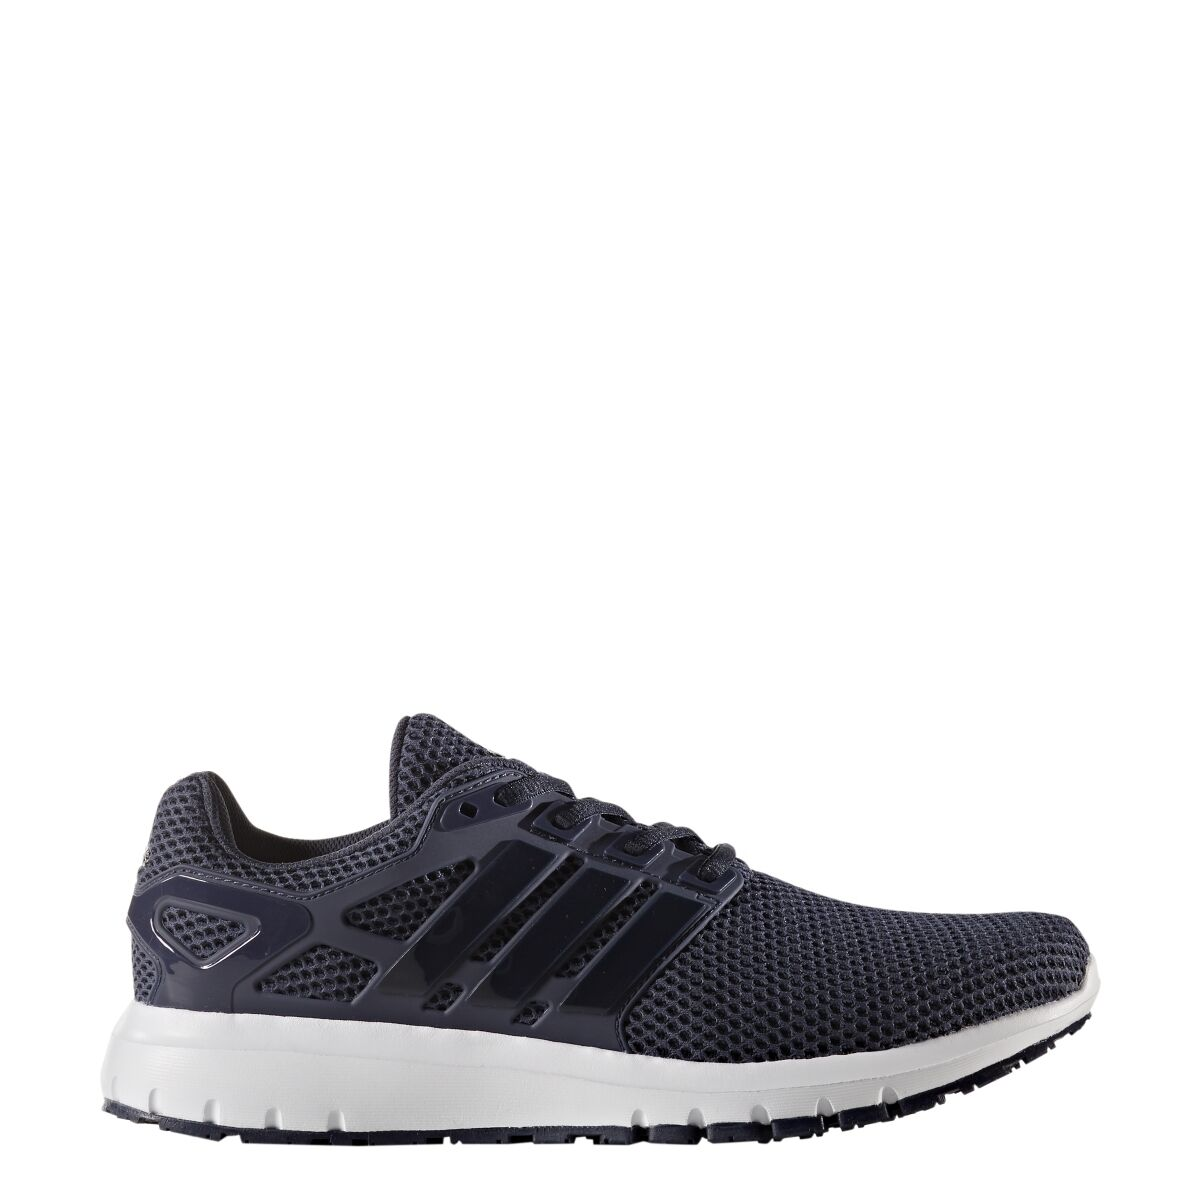 Men's Adidas Energy Cloud Ink Blue Running Athletic Sport Shoes CG3006 Comfortable New shoes for men and women, limited time discount